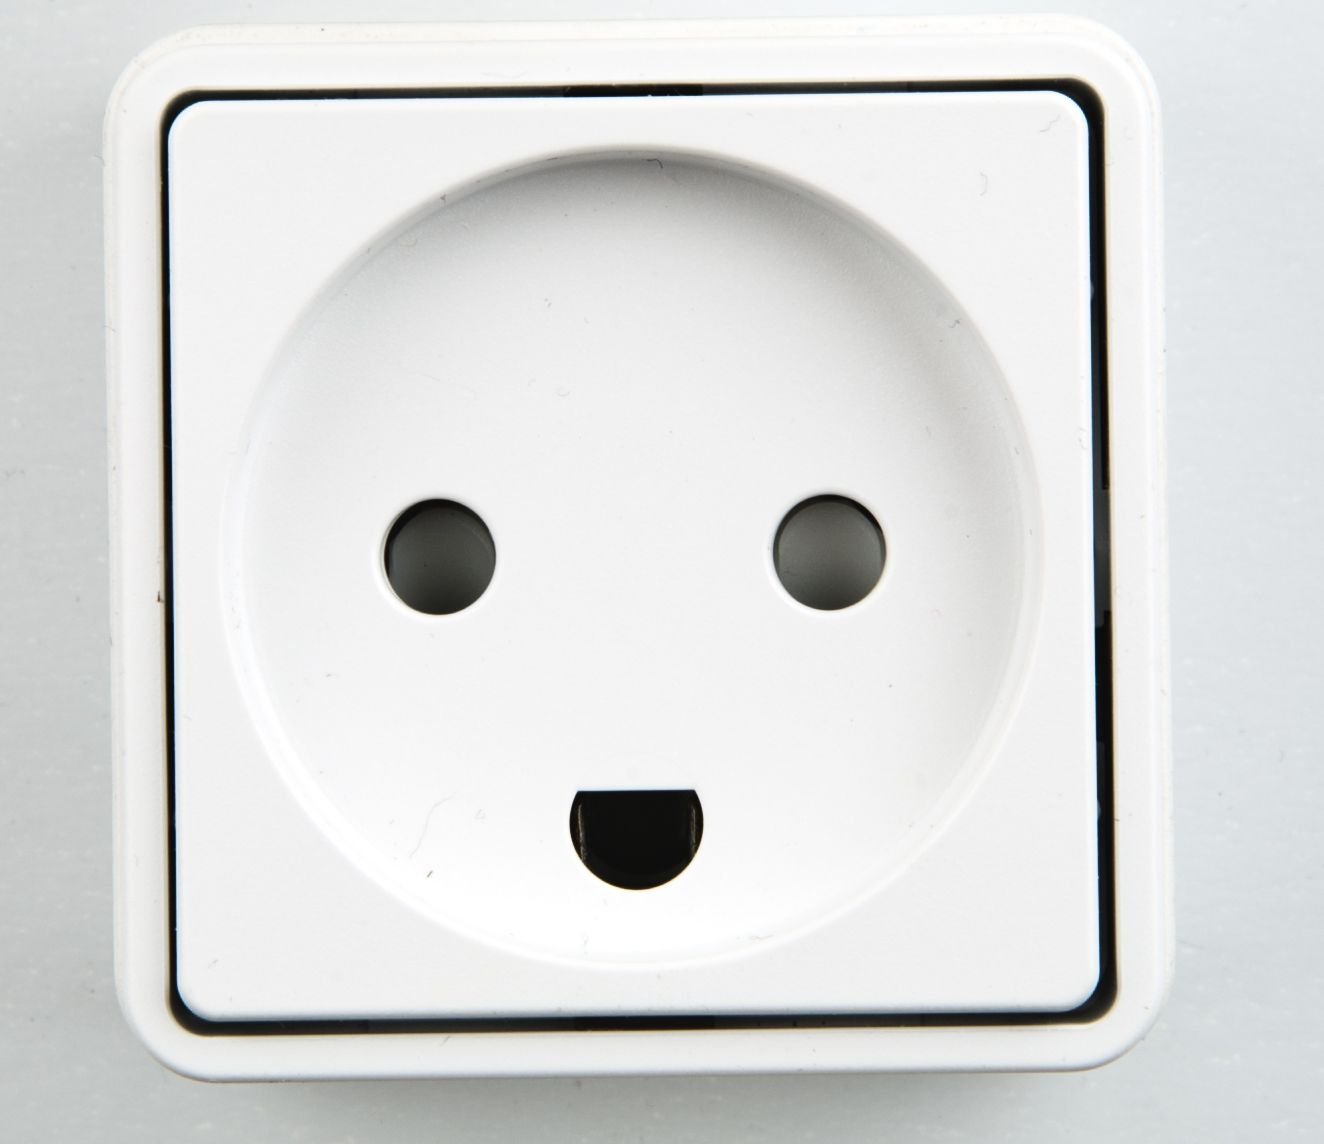 Get Ready For New Plugs Starting In 2015 Future Batteries That Could Power Your Home Techcentral Danish Plugs2